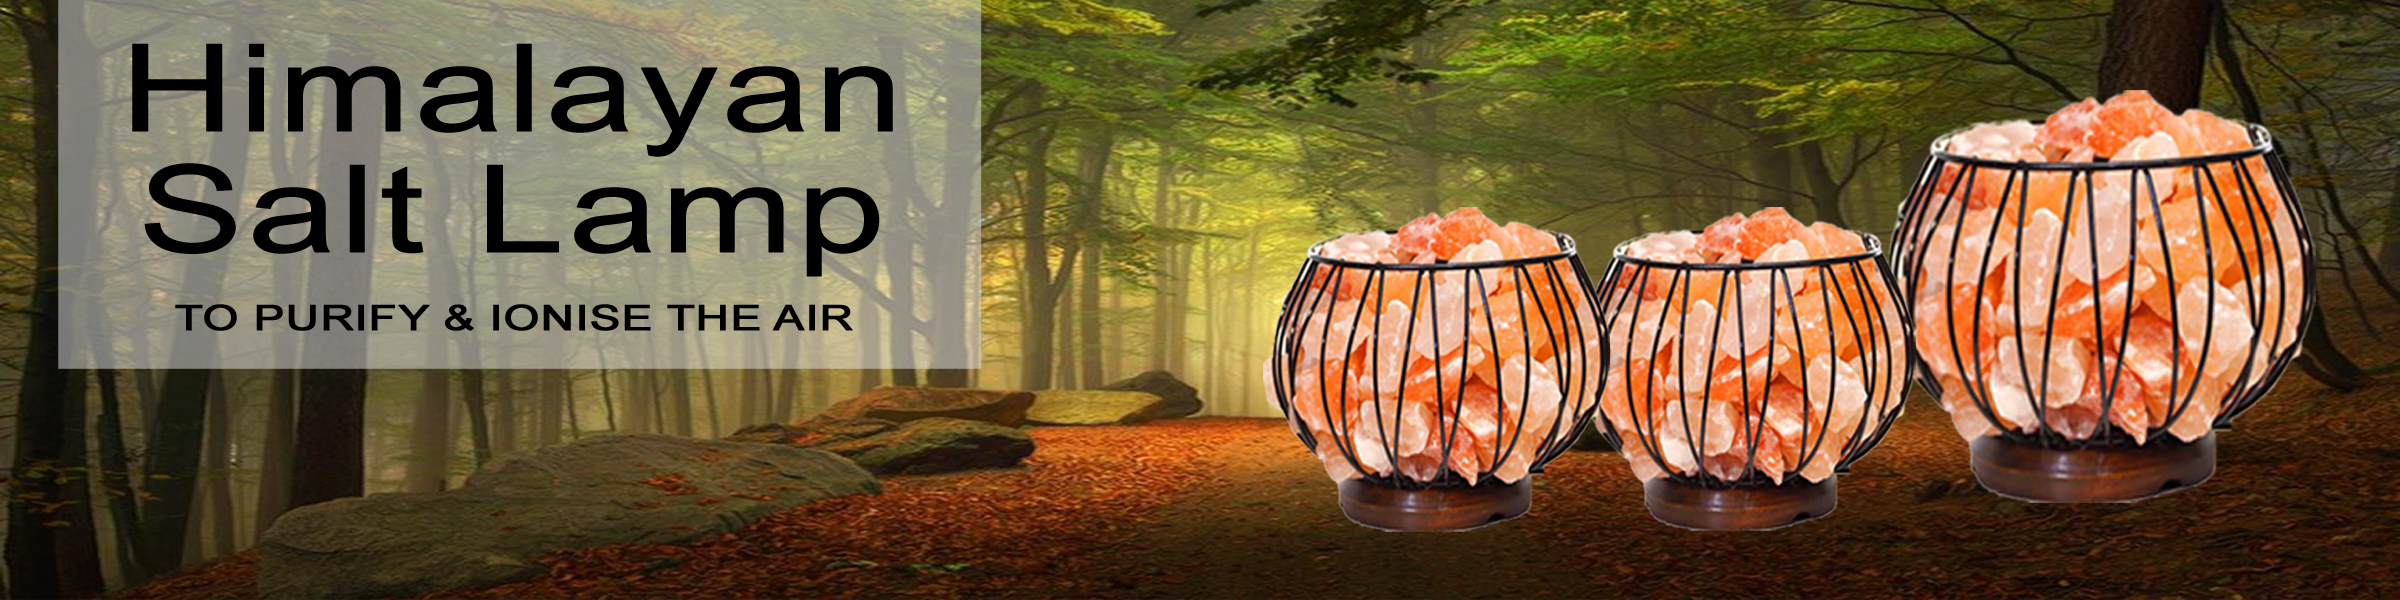 Himalayan Salt Lamp to Purify and Ionise the Air